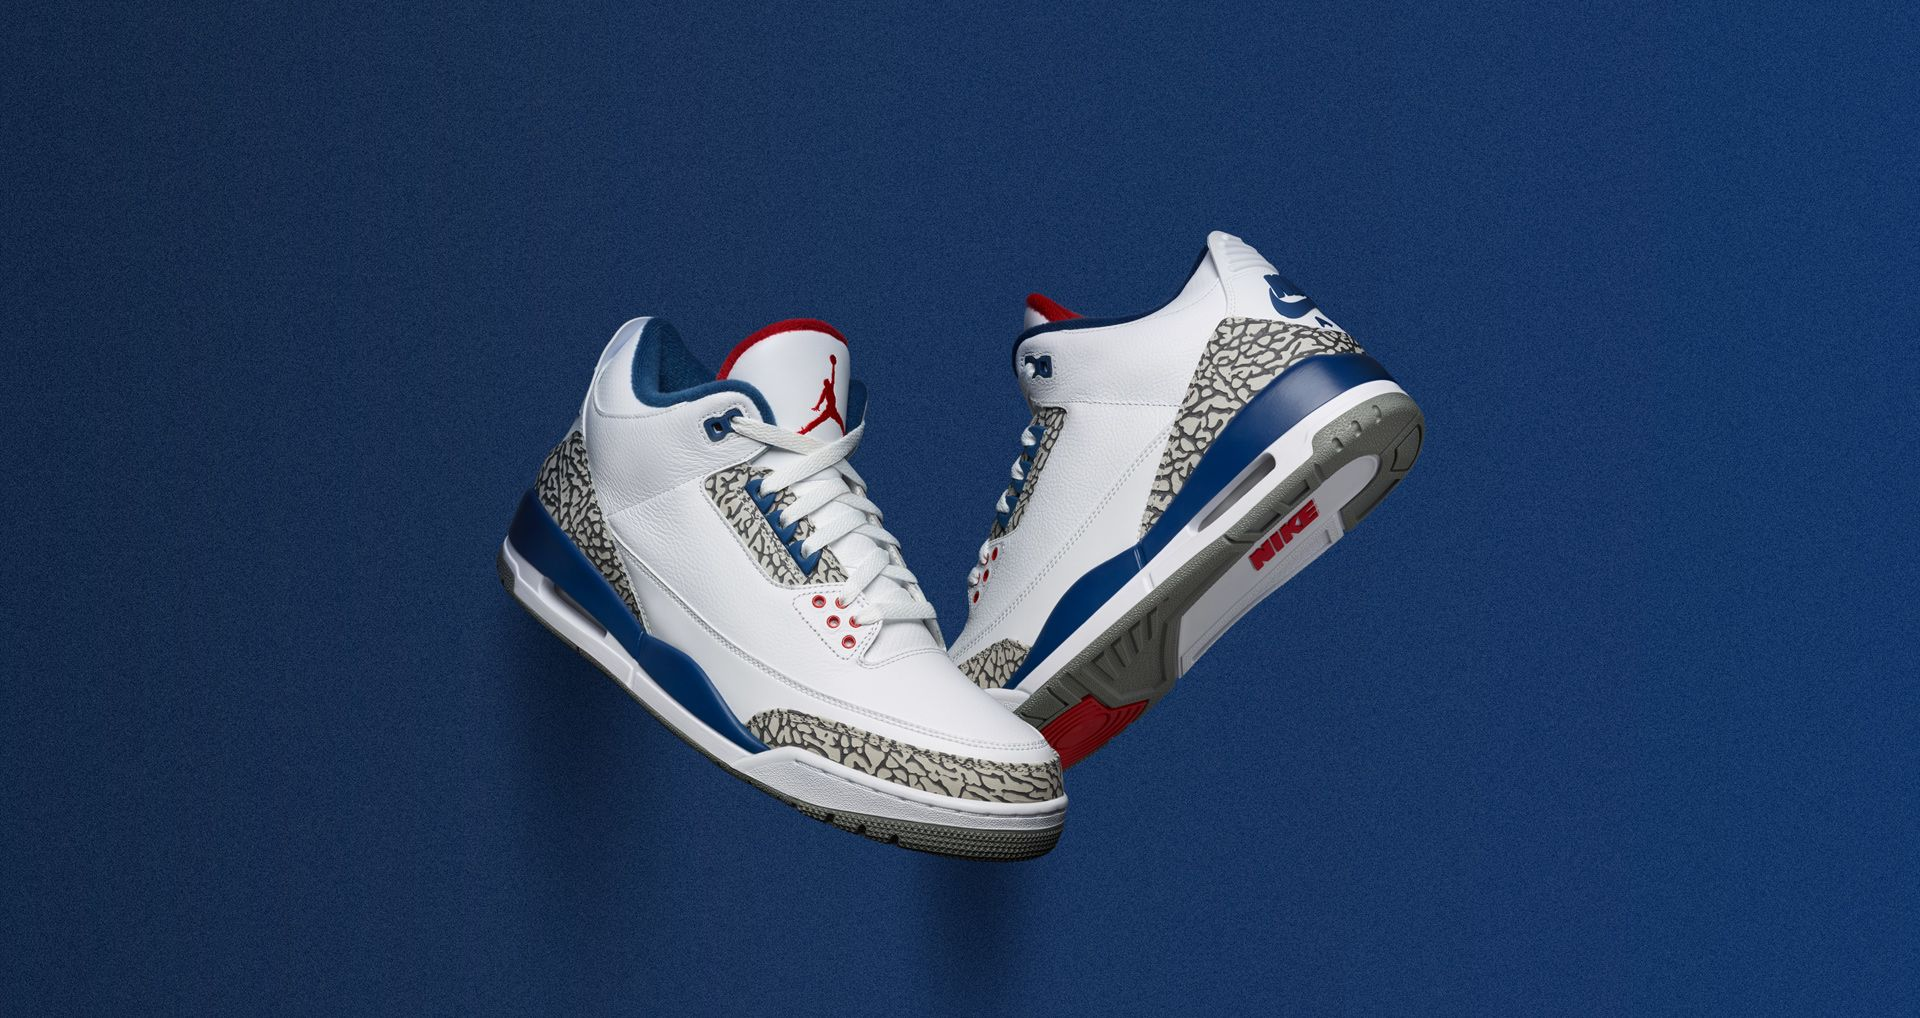 d934a7e27b52 Air Jordan 3 Retro OG  White   Cement Grey   Blue . Nike⁠+ SNKRS